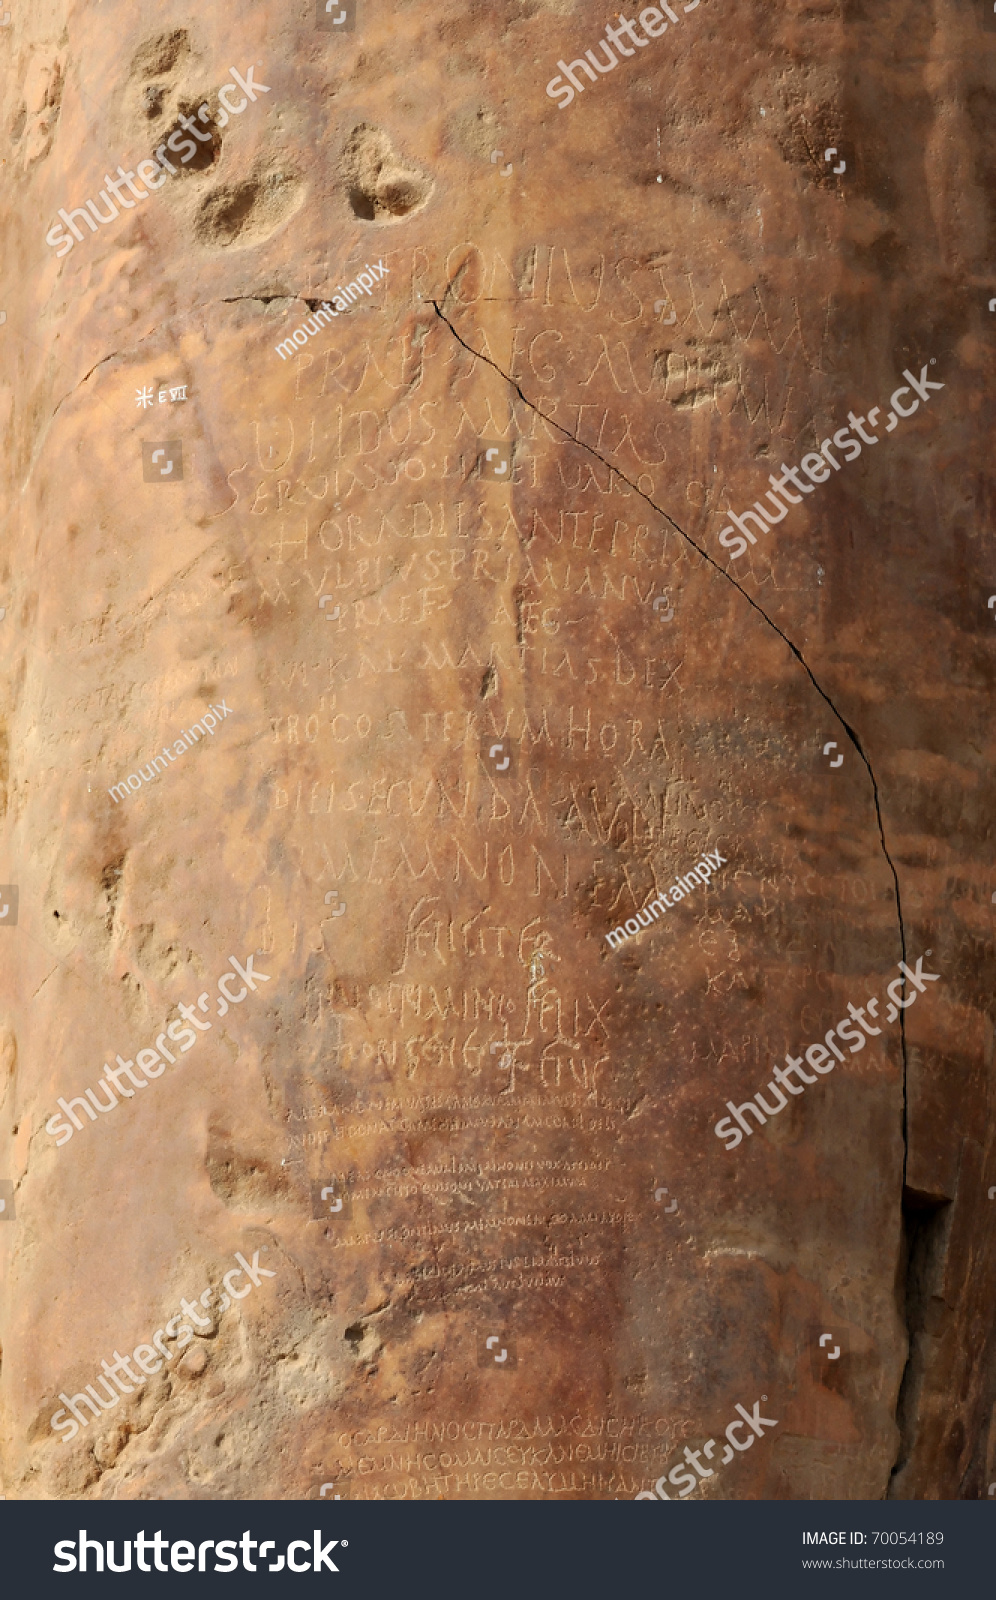 Ancient greek and ancient roman graffiti on the even more ancient colossus of memnon at thebes